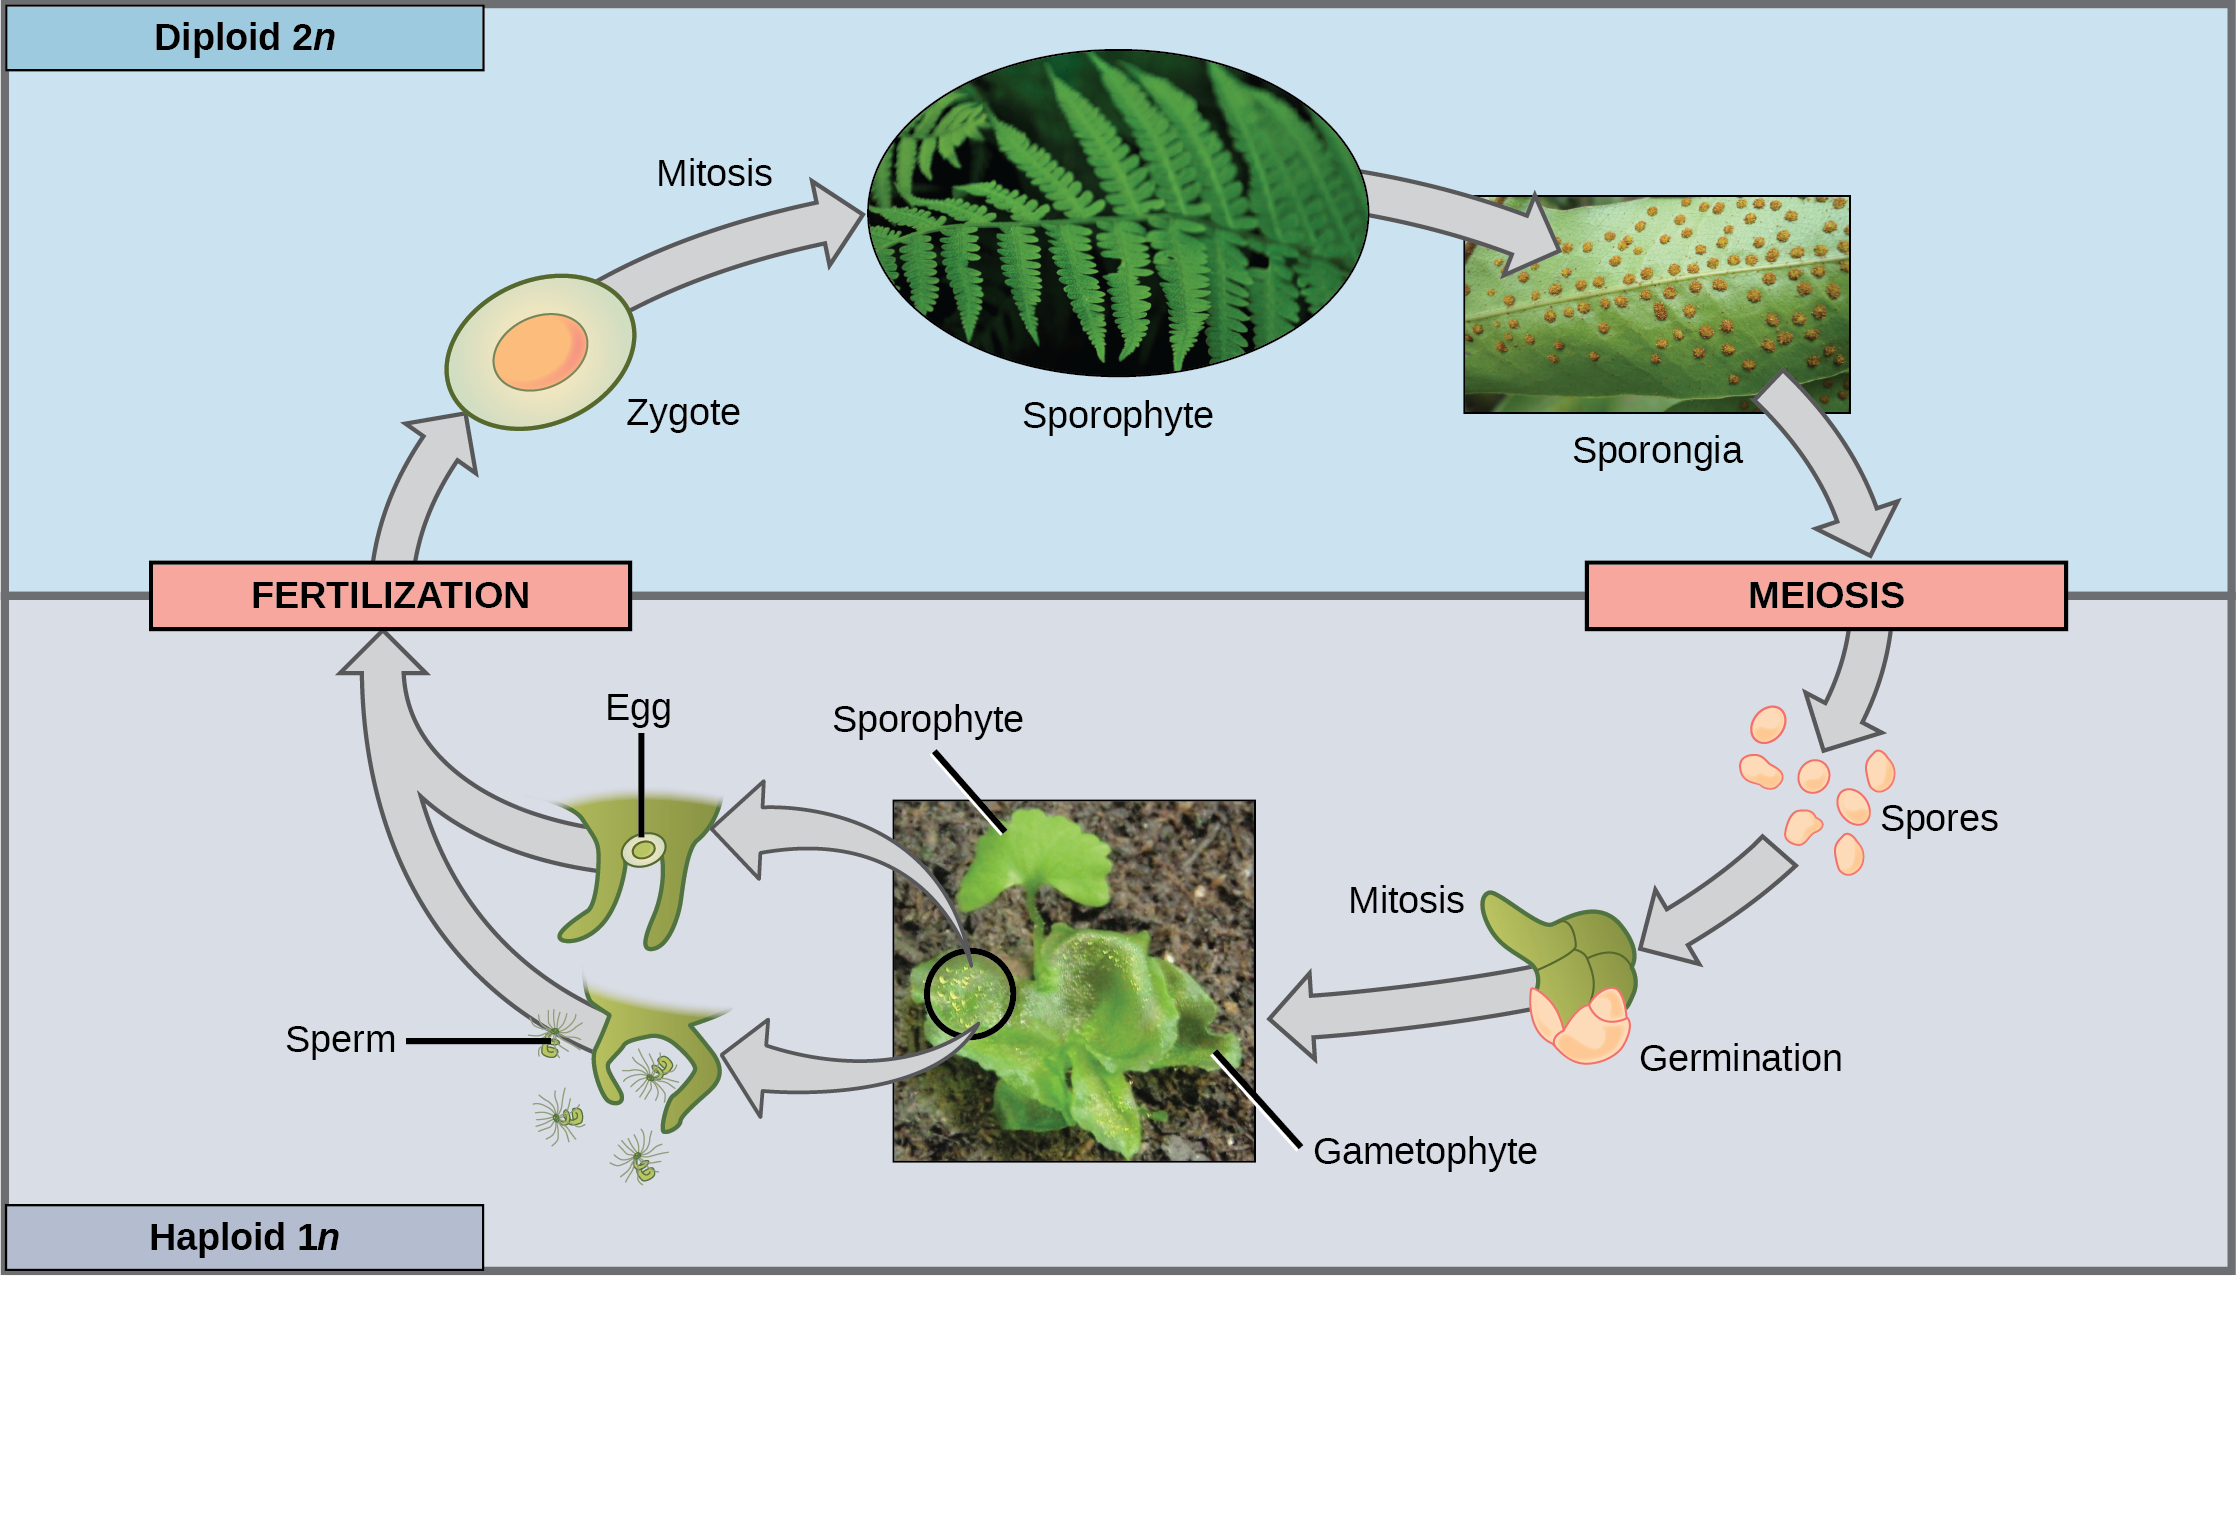 This illustration shows the life cycle of fern plants. The diploid (2n) zygote undergoes mitosis to produce the sphorophyte, which is the familiar, leafy plant. Sporangia form on the underside of the leaves of the sphorophyte. Sporangia undergo meiosis to form haploid (1n) spores. The spores germinate and undergo mitosis to form a multicellular, leafy gametophyte. The gametophyte produces eggs and sperm. Upon fertilization, the egg and sperm form a diploid zygote.